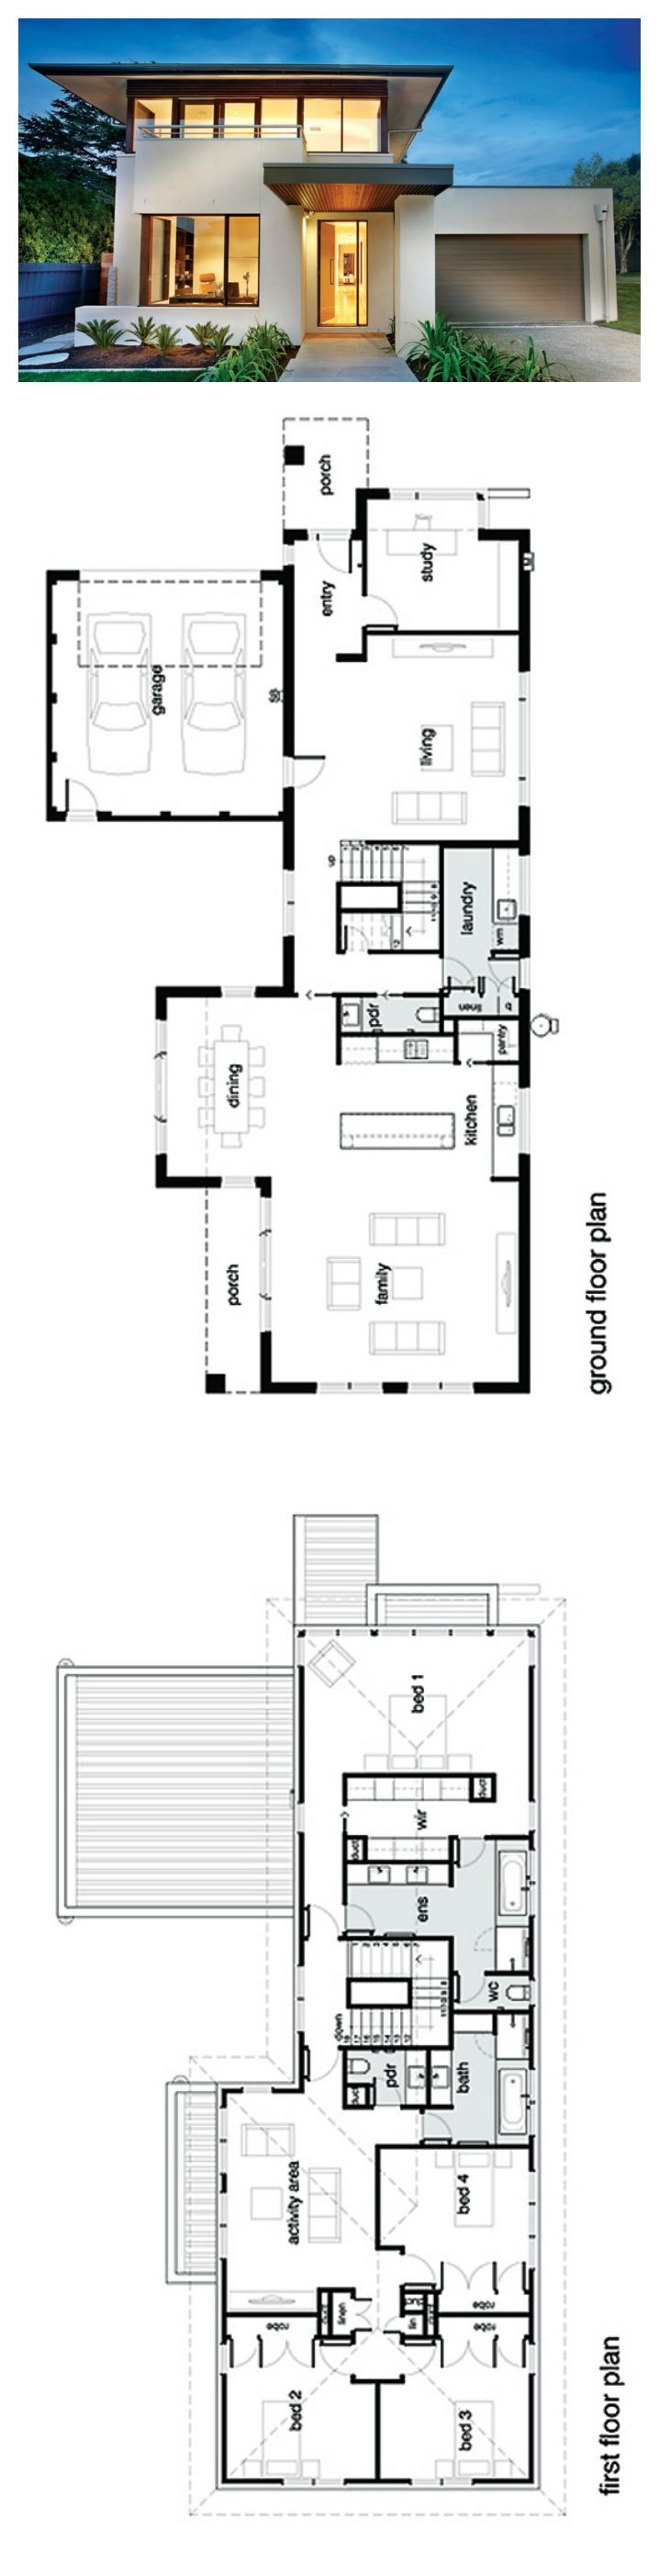 The 25 best ideas about modern house plans on pinterest modern house floor plans modern 4 bedroom modern house plans